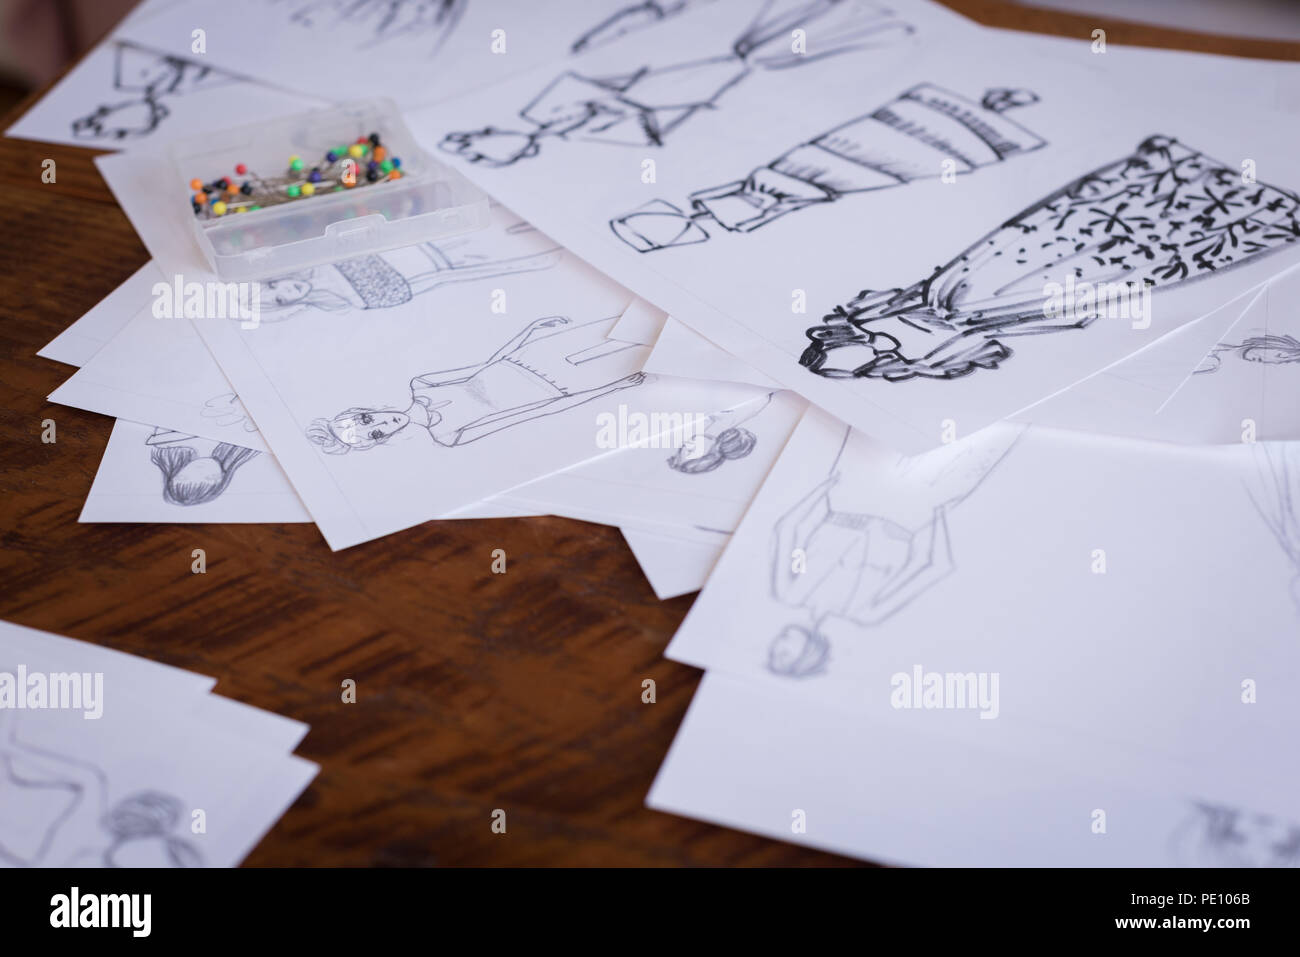 Sketches of design on table in the studio - Stock Image